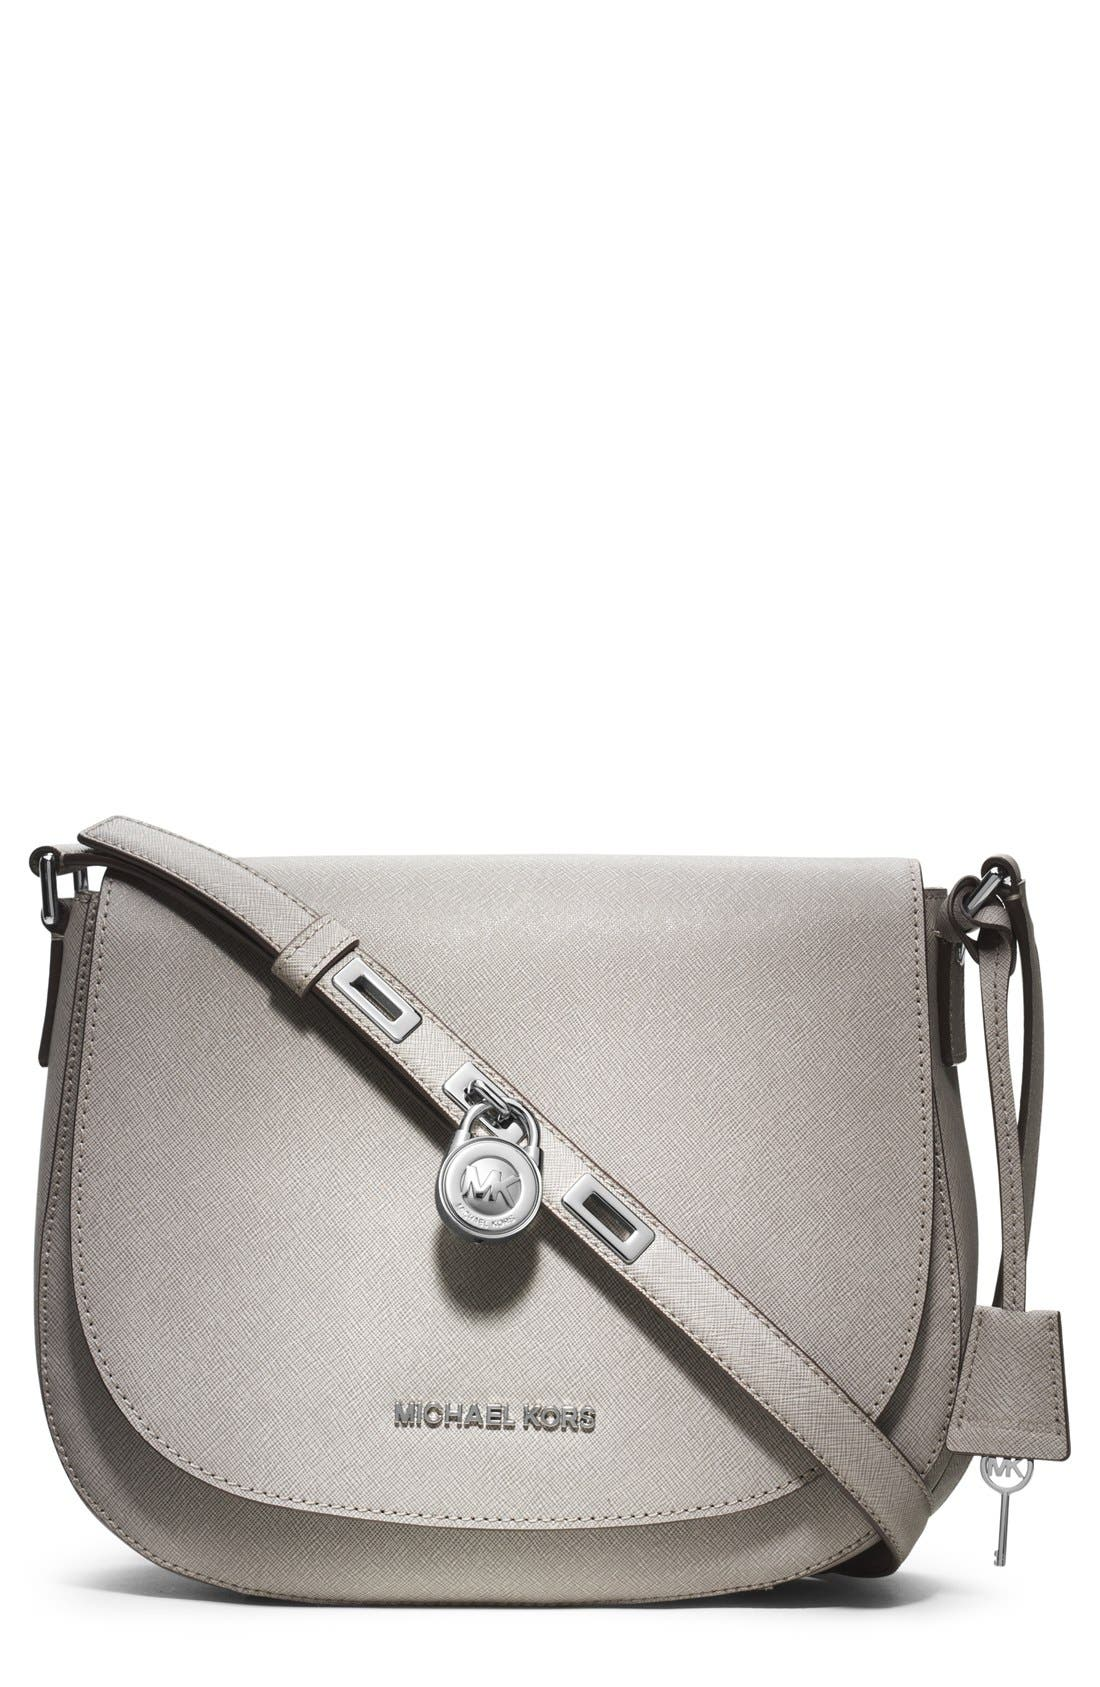 Alternate Image 1 Selected - MICHAEL Michael Kors 'Large' Saffiano Leather Crossbody Bag